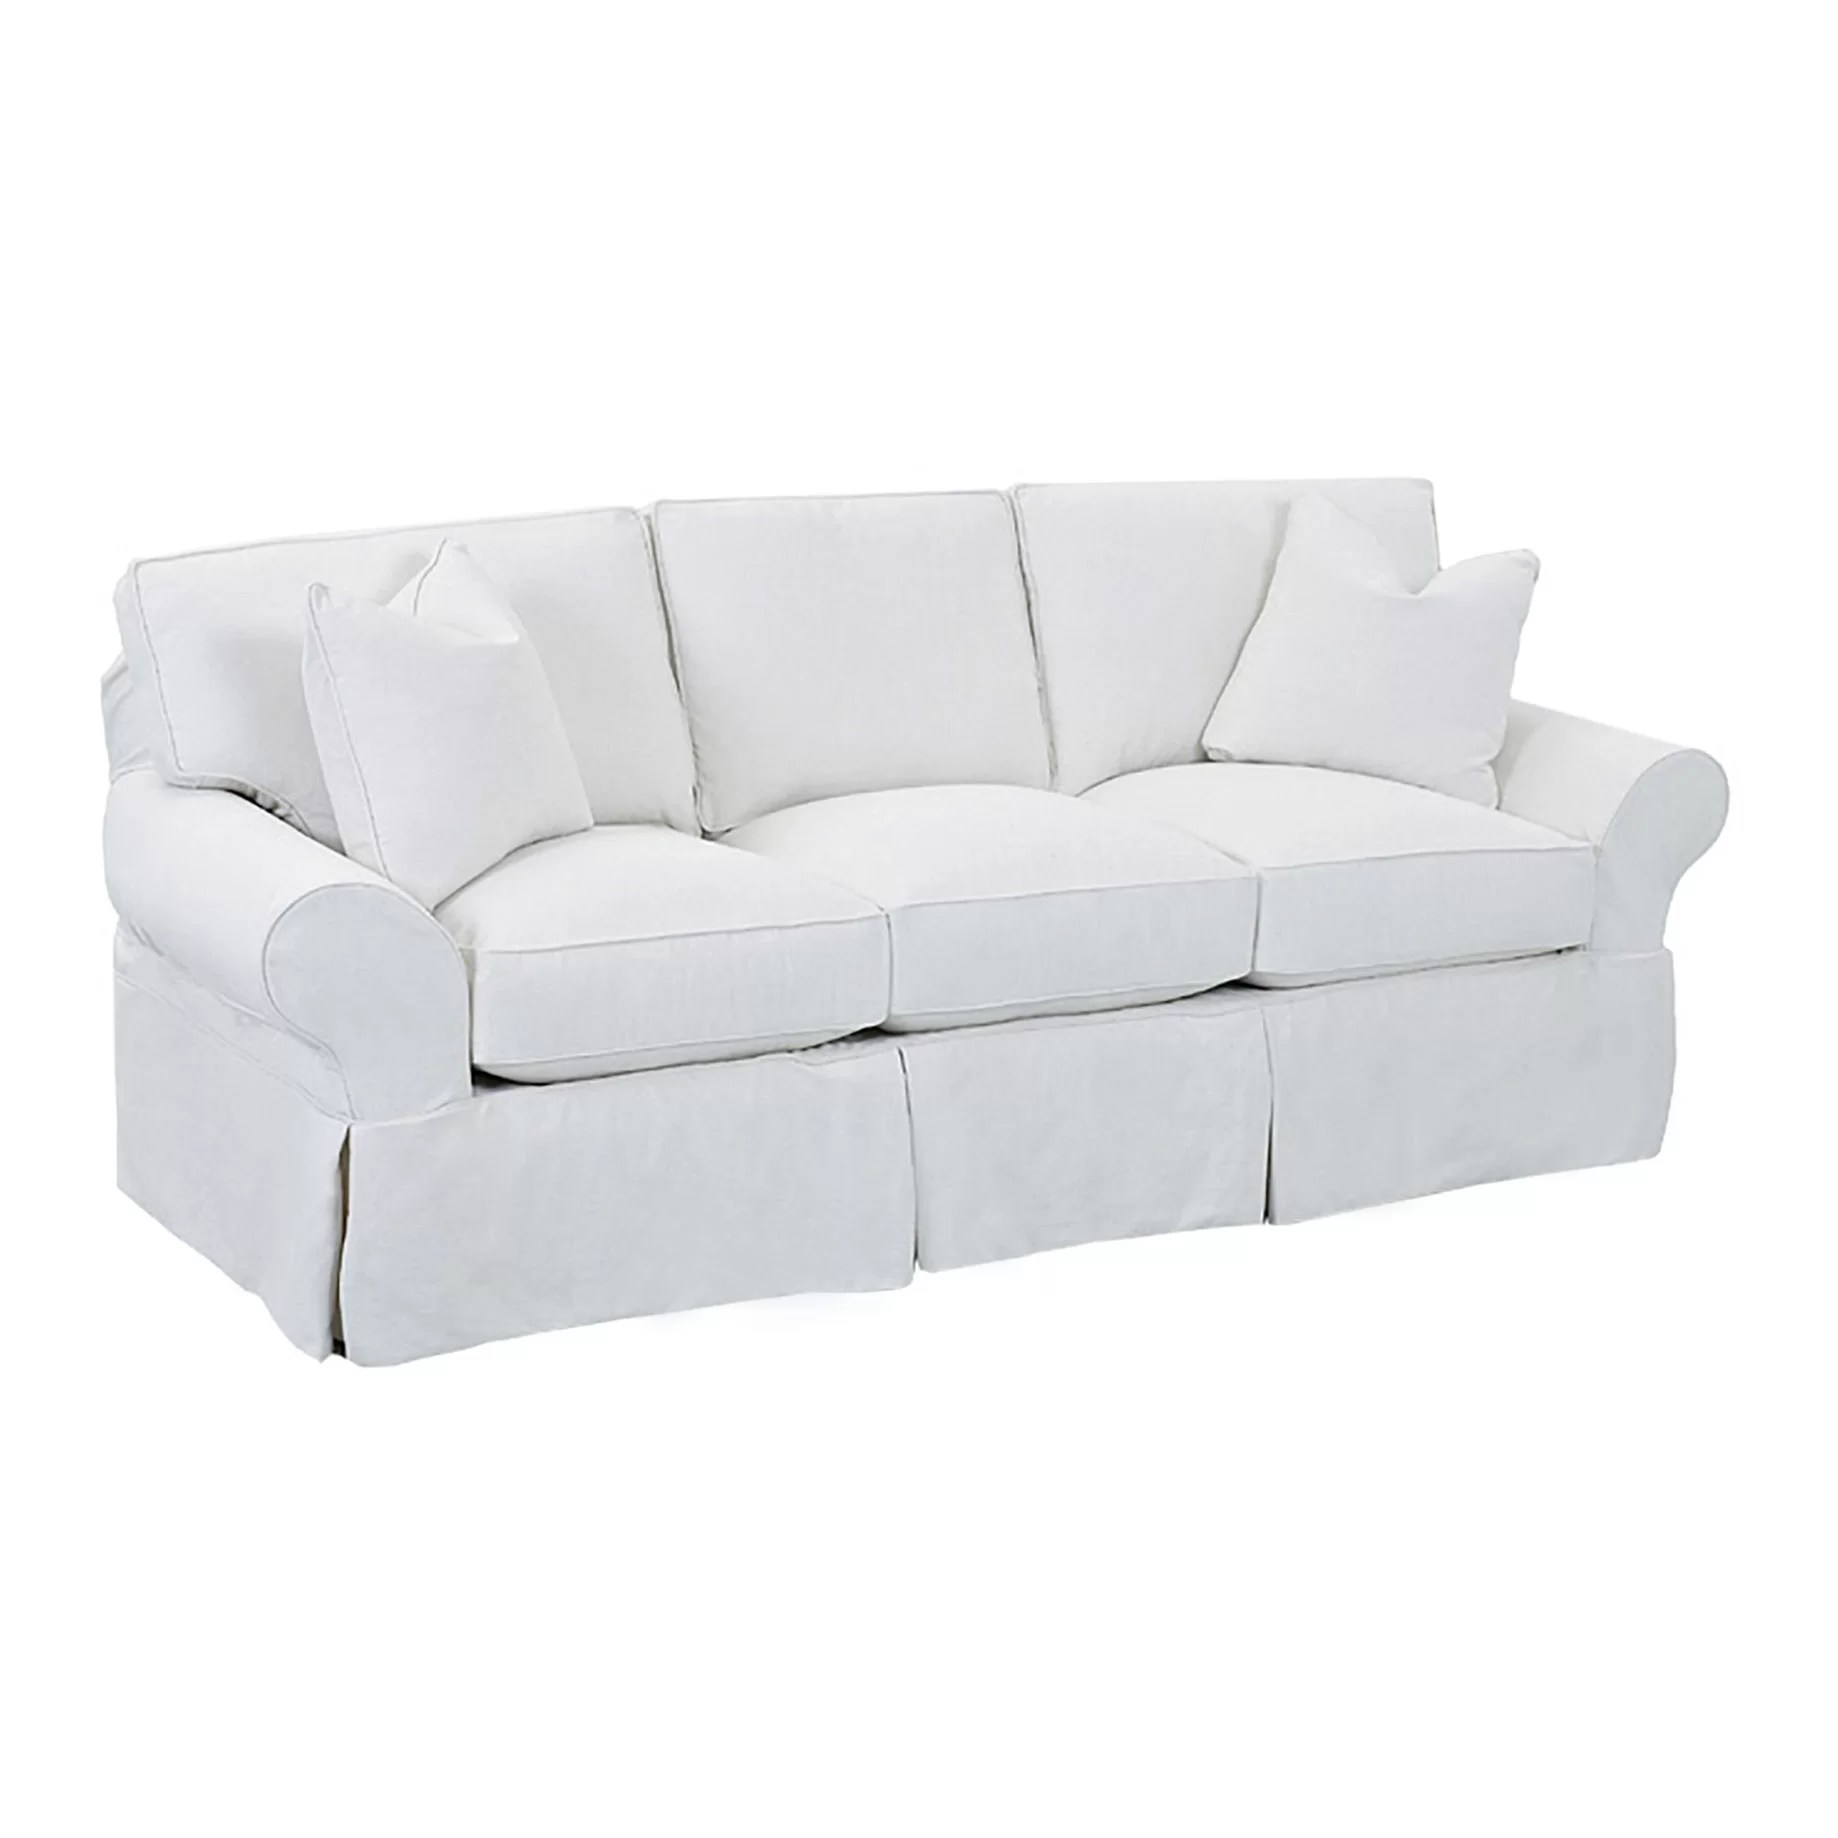 wayfair furniture sofa replace cushions with memory foam custom upholstery casey and reviews